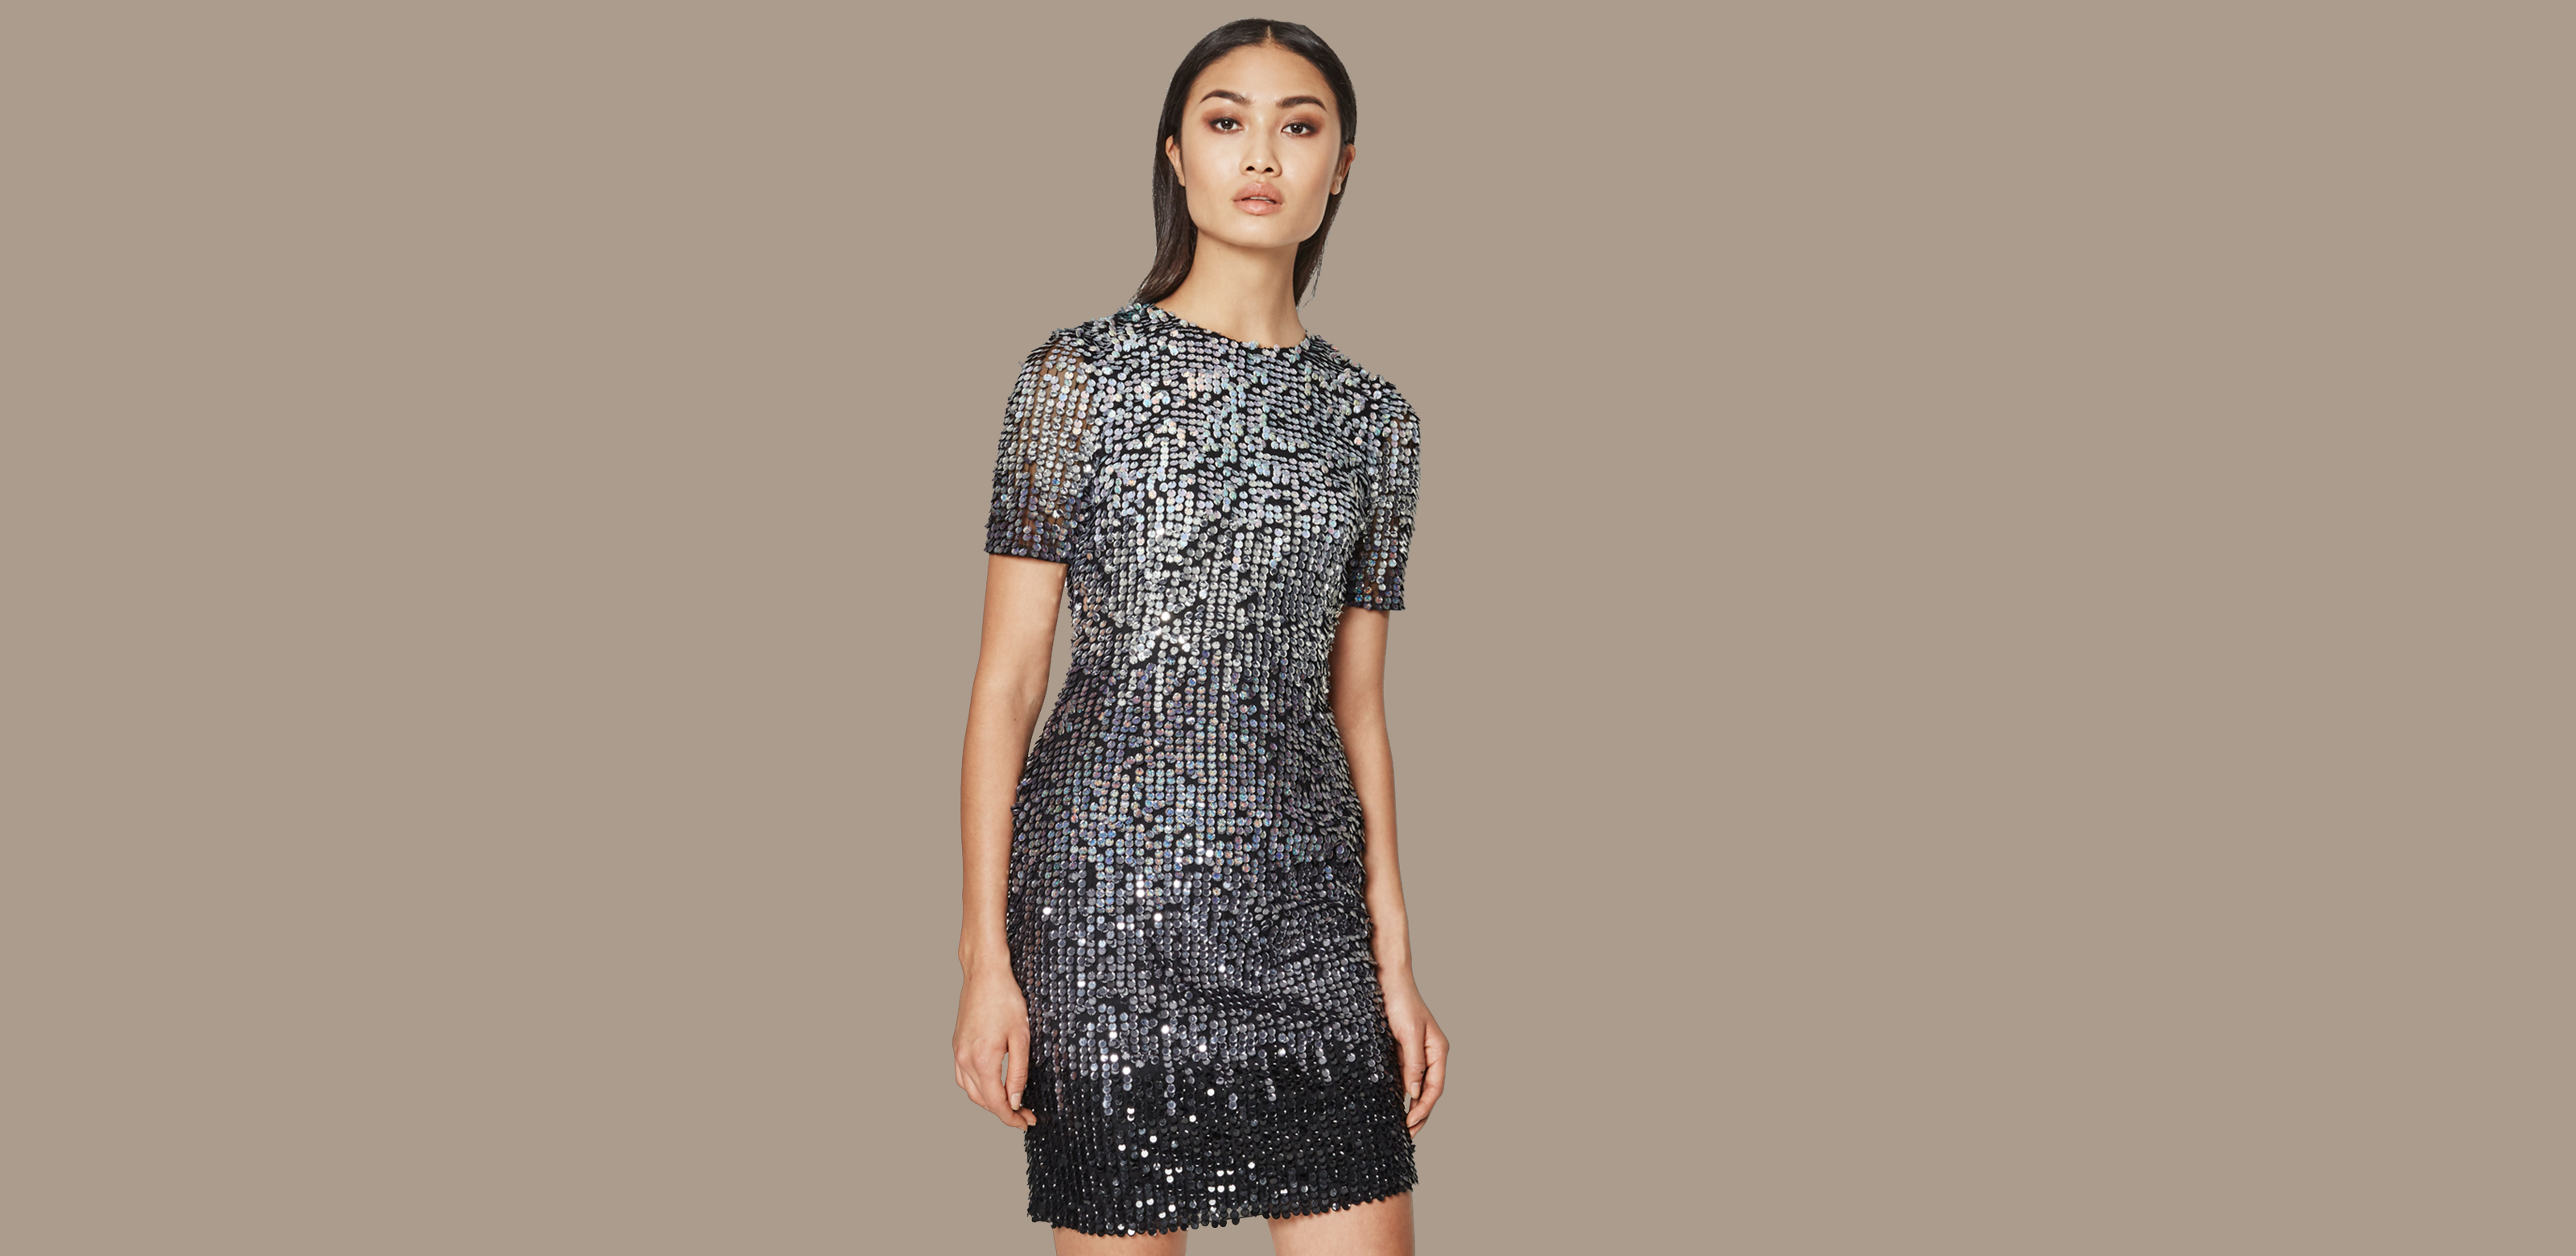 silver dress 2016 fashion